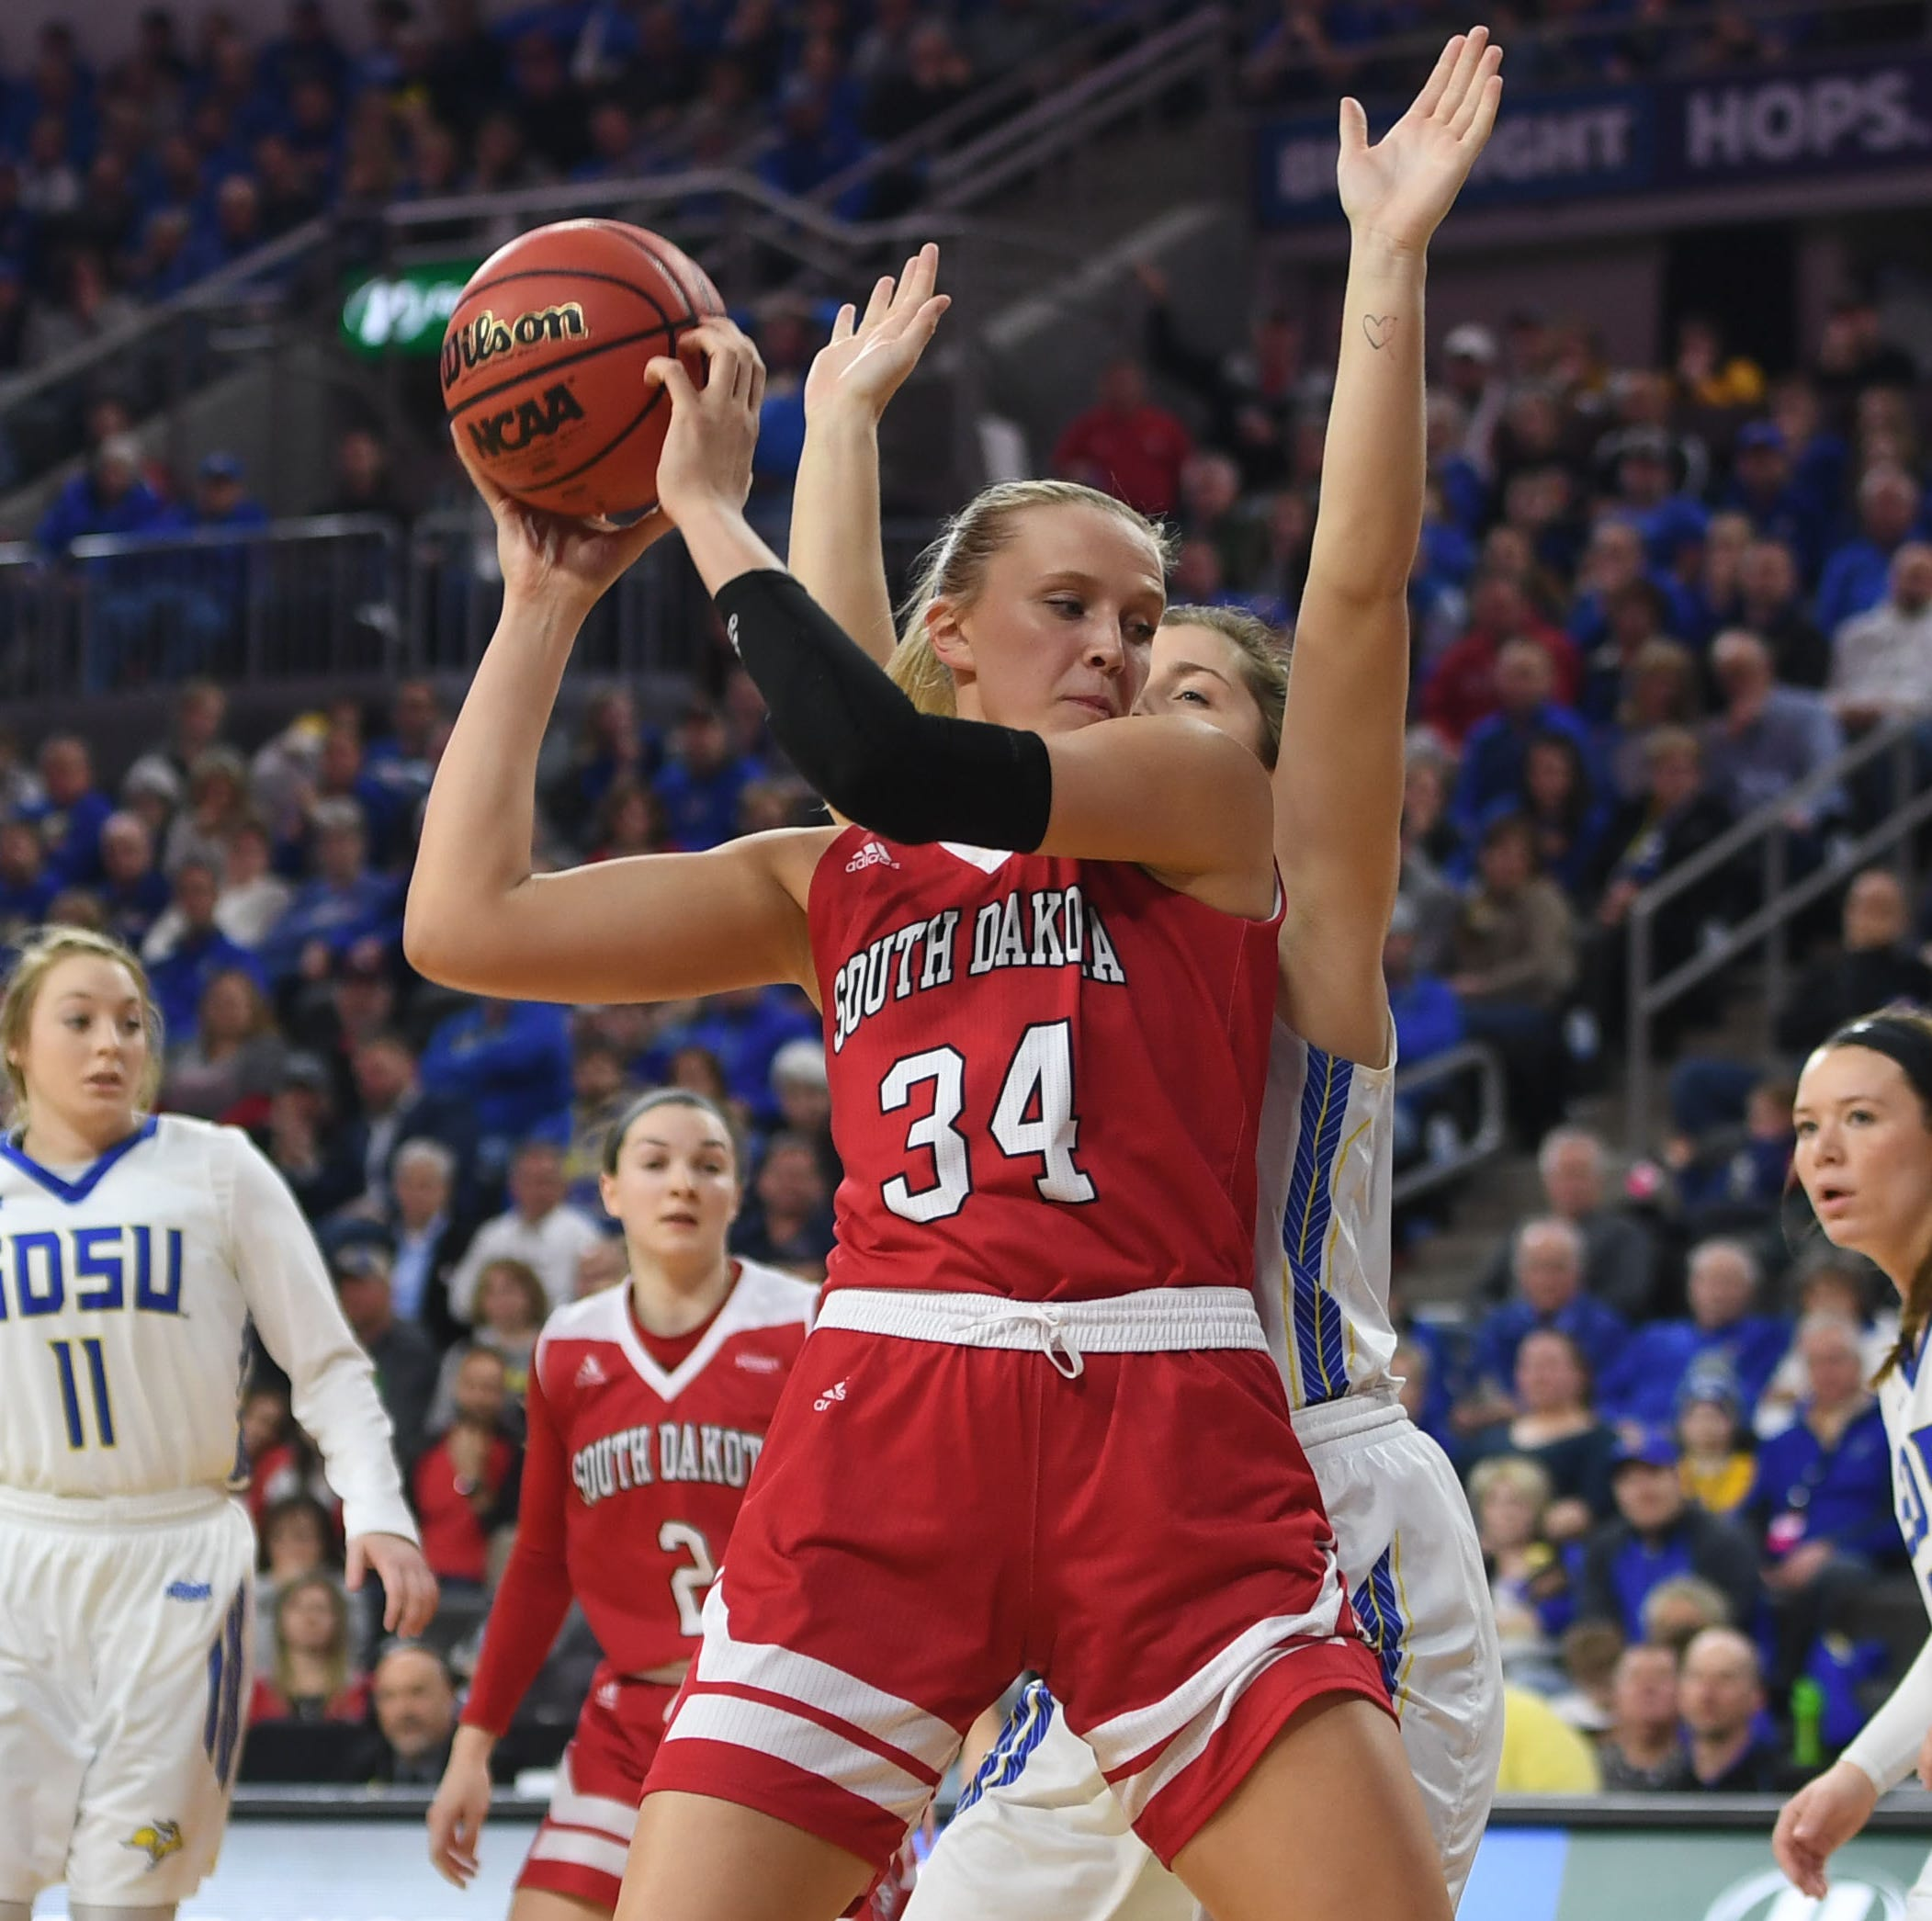 South Dakota Coyotes at NCAA tournament: Hannah Sjerven develops into 'game changer'